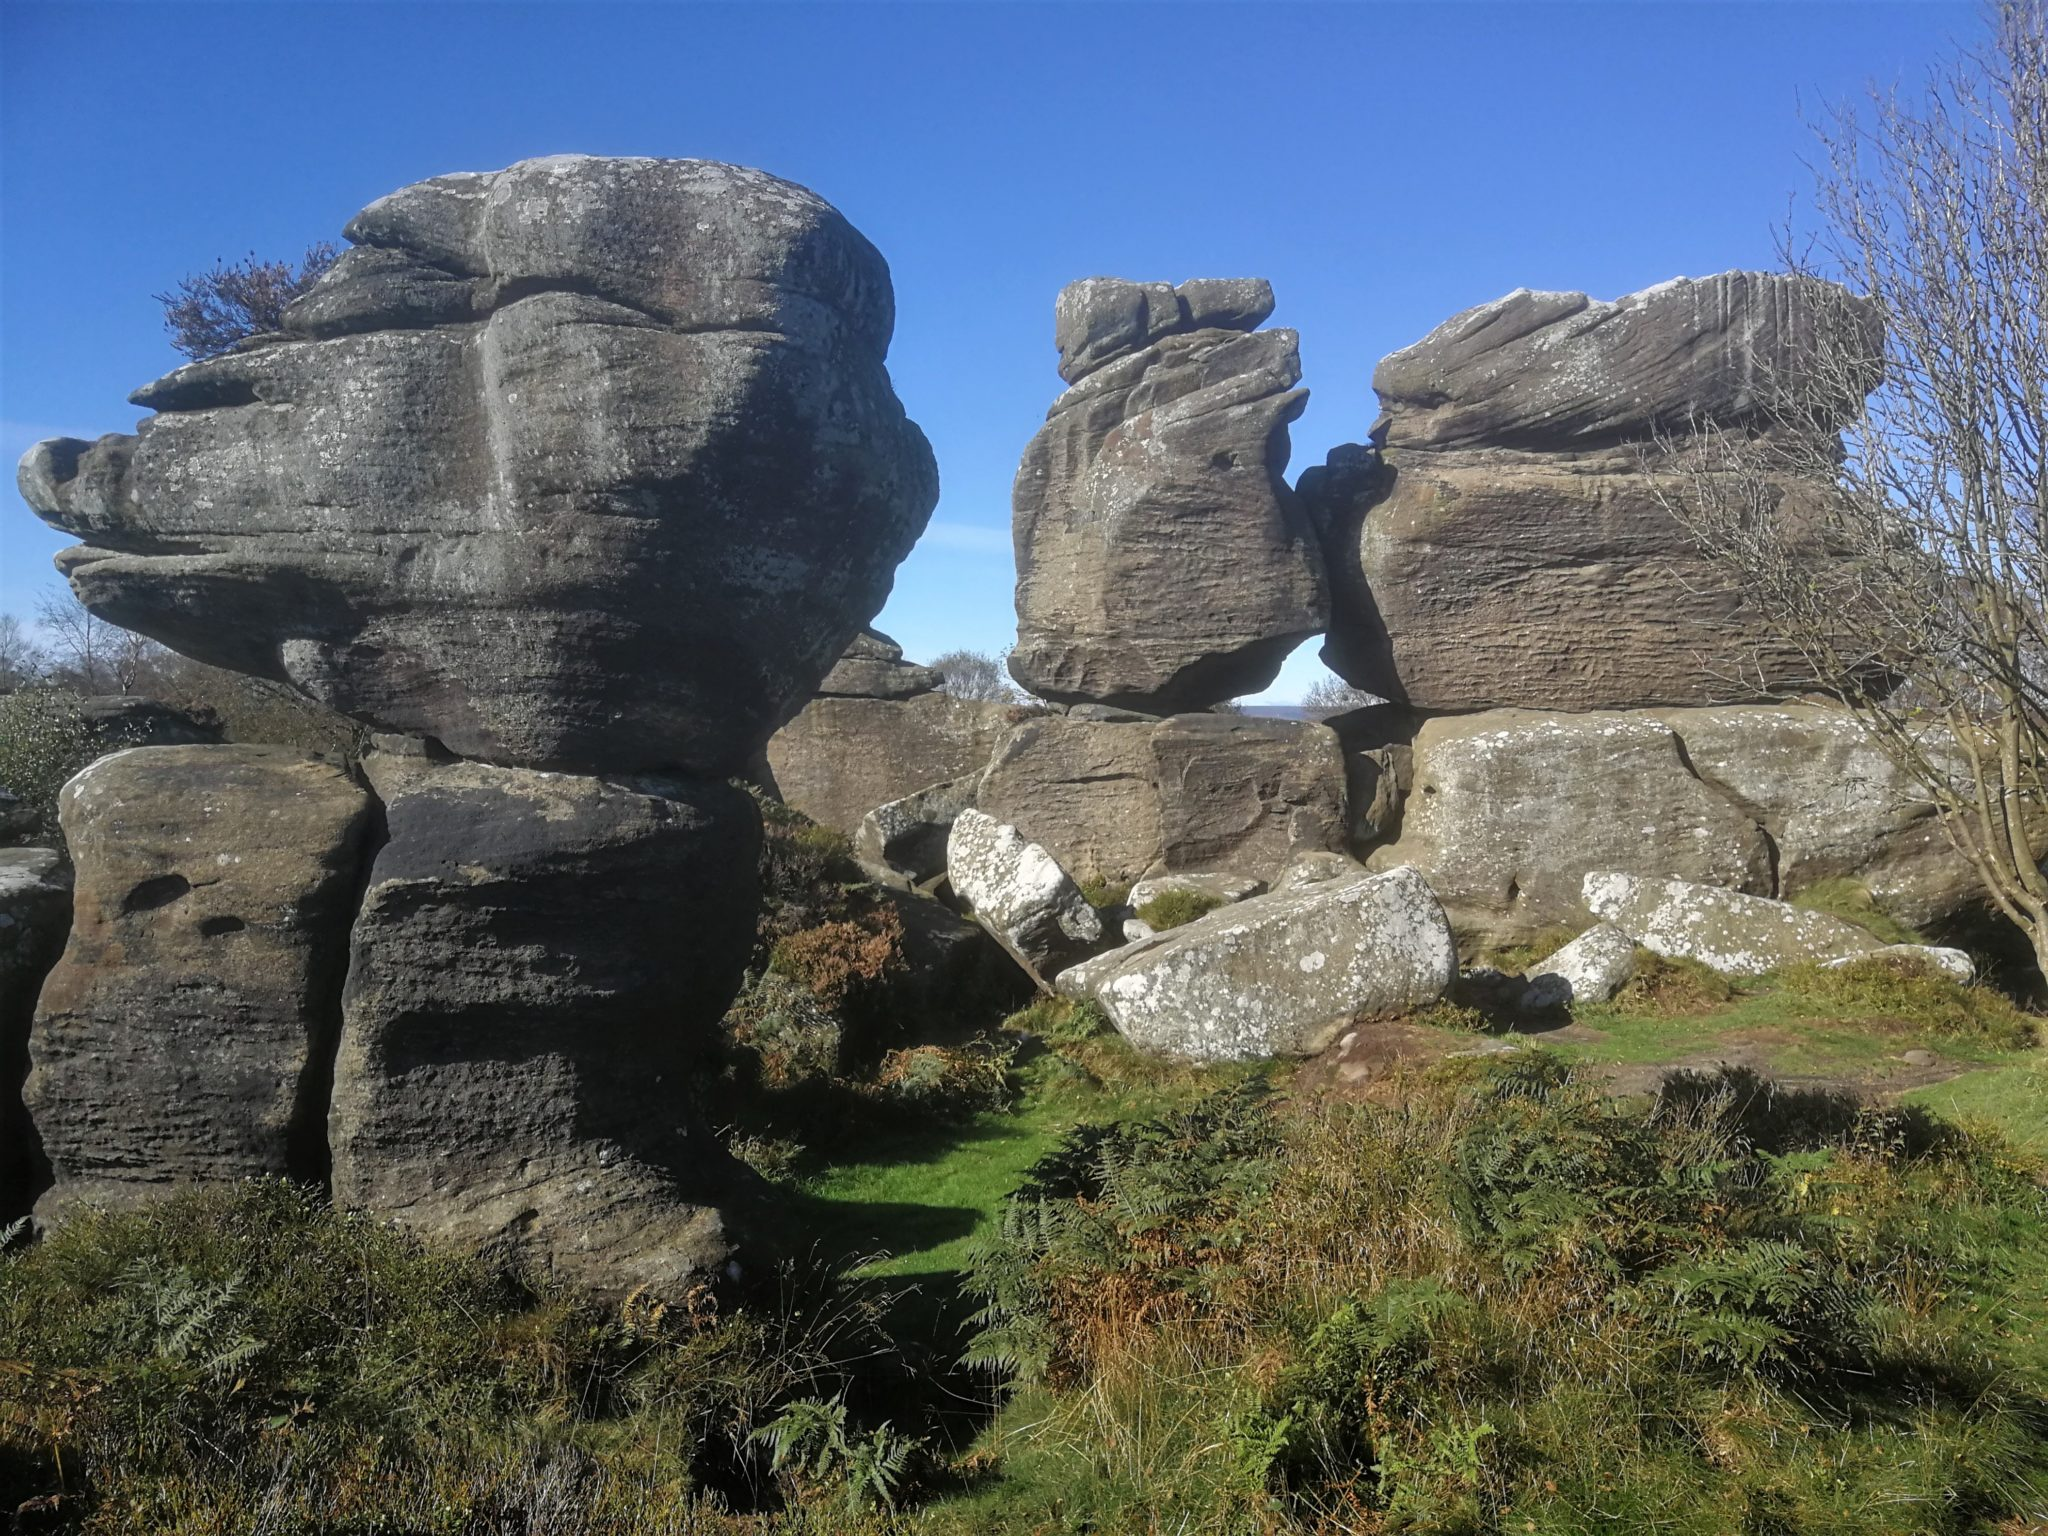 Exploring Brimham Rocks in the Yorkshire sunshine!